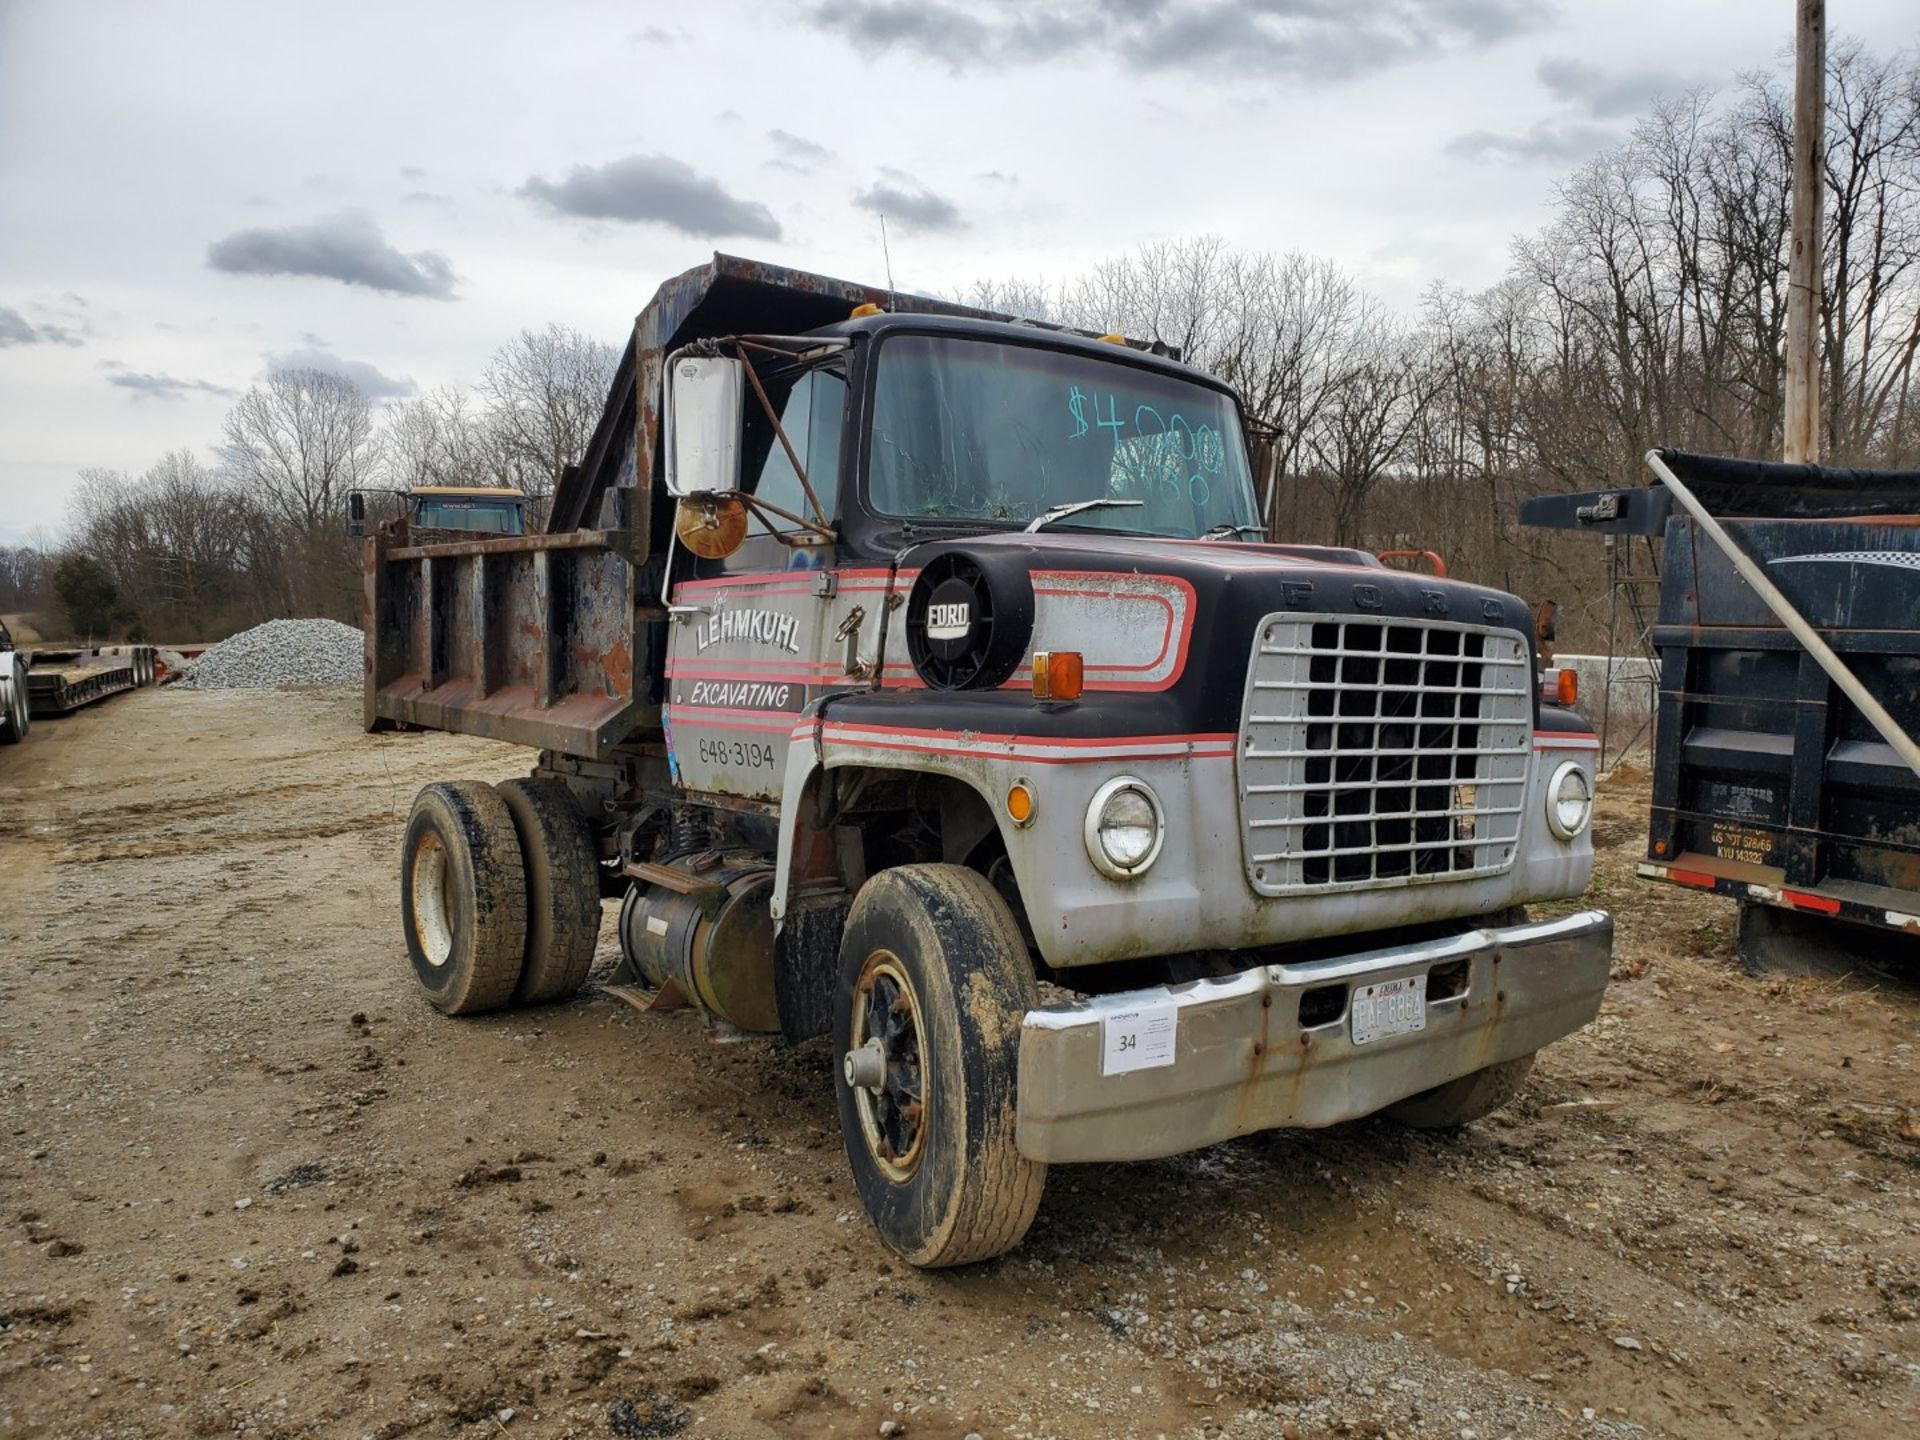 Lot 34 - 1976 Ford 8000 Single Axle Dump Truck, 9 ft Dump Bed, Manual Transmission, 2-Speed Axle, 86,500 Mile